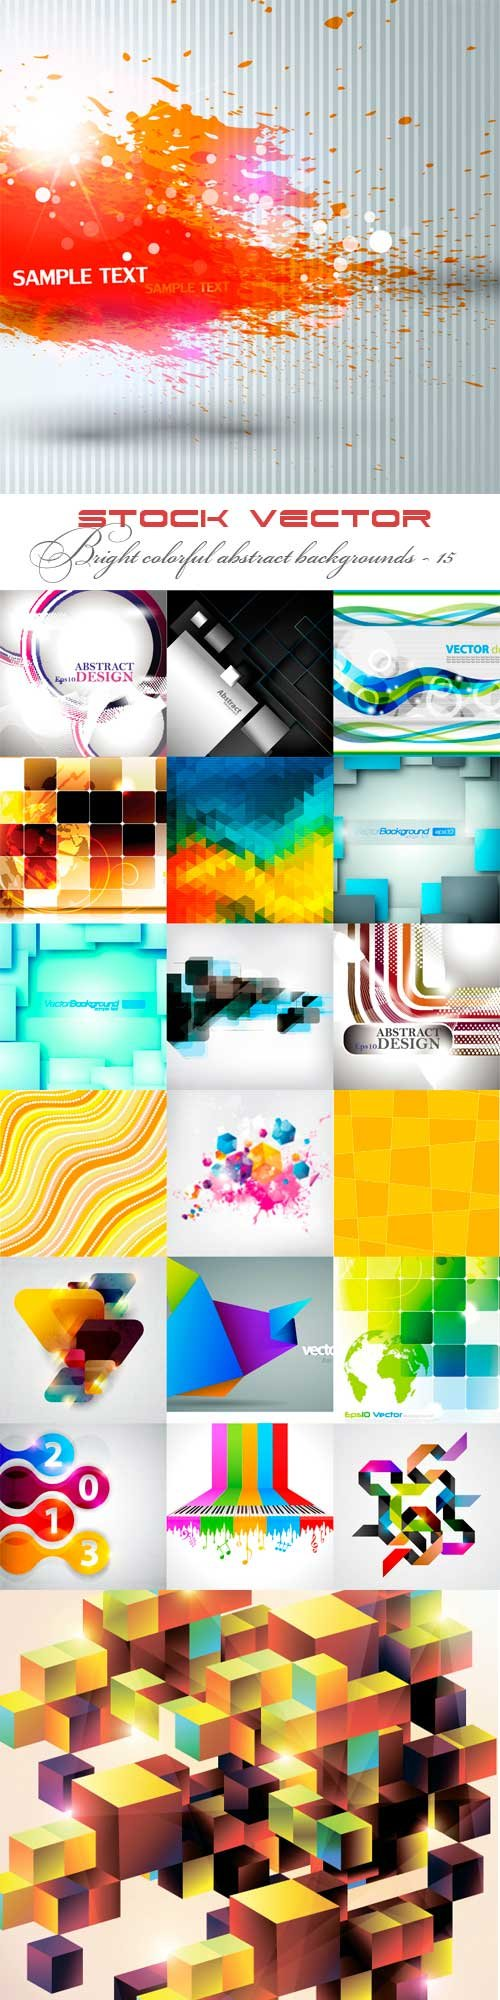 Bright colorful abstract backgrounds vector - 15